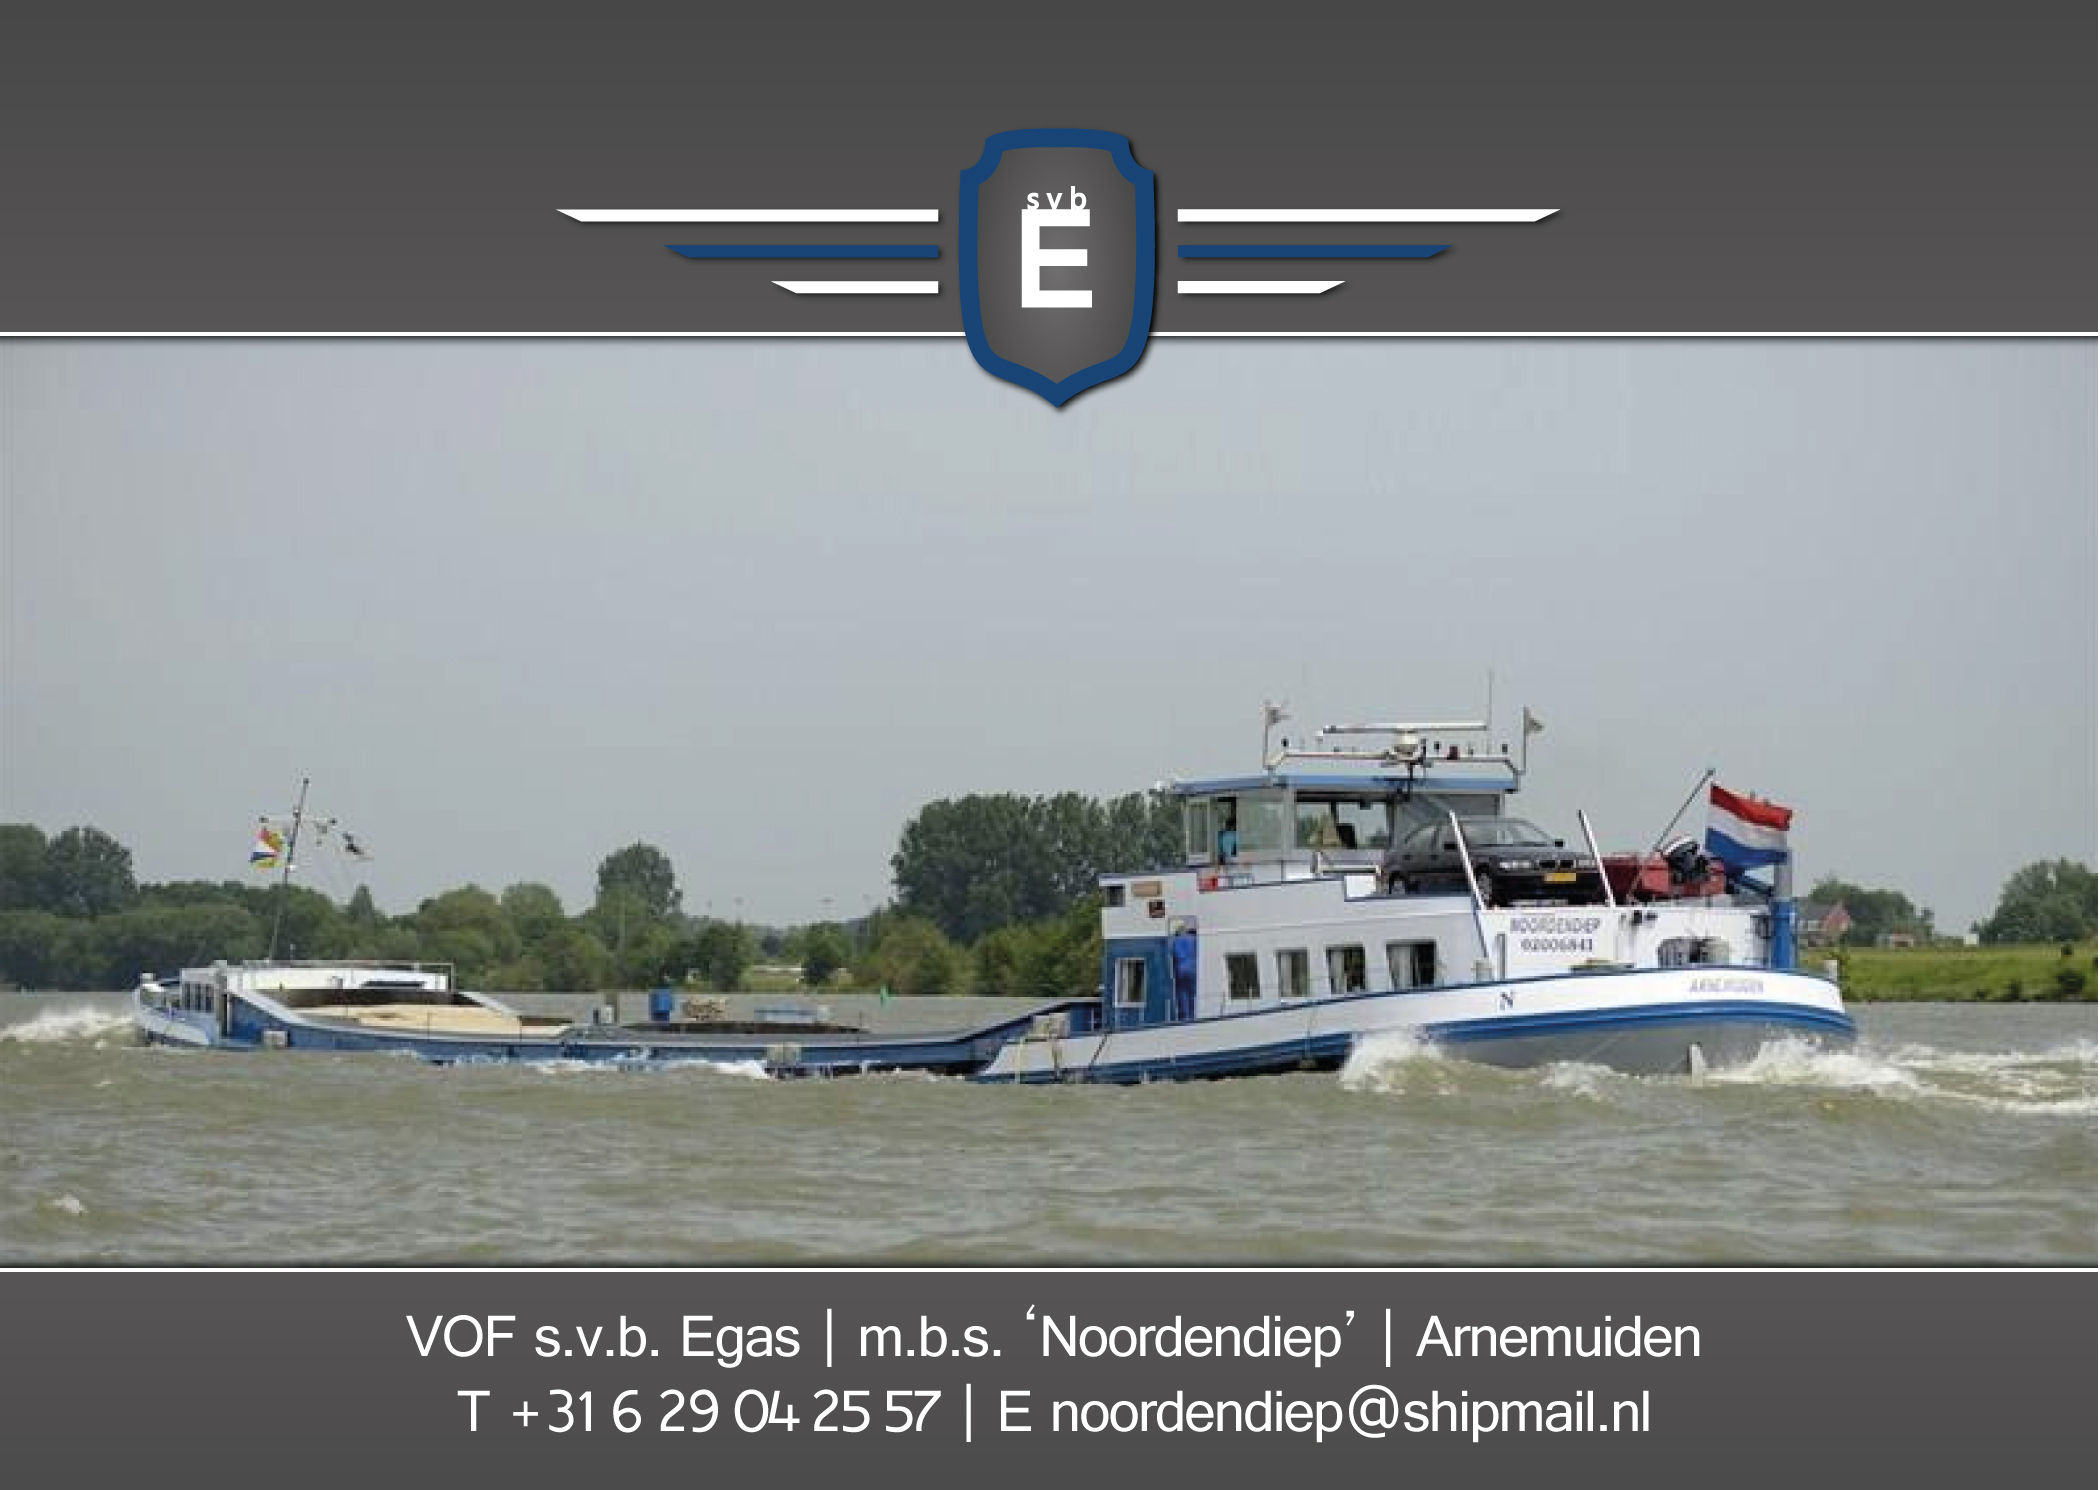 Noordendiep-advertentie.jpg